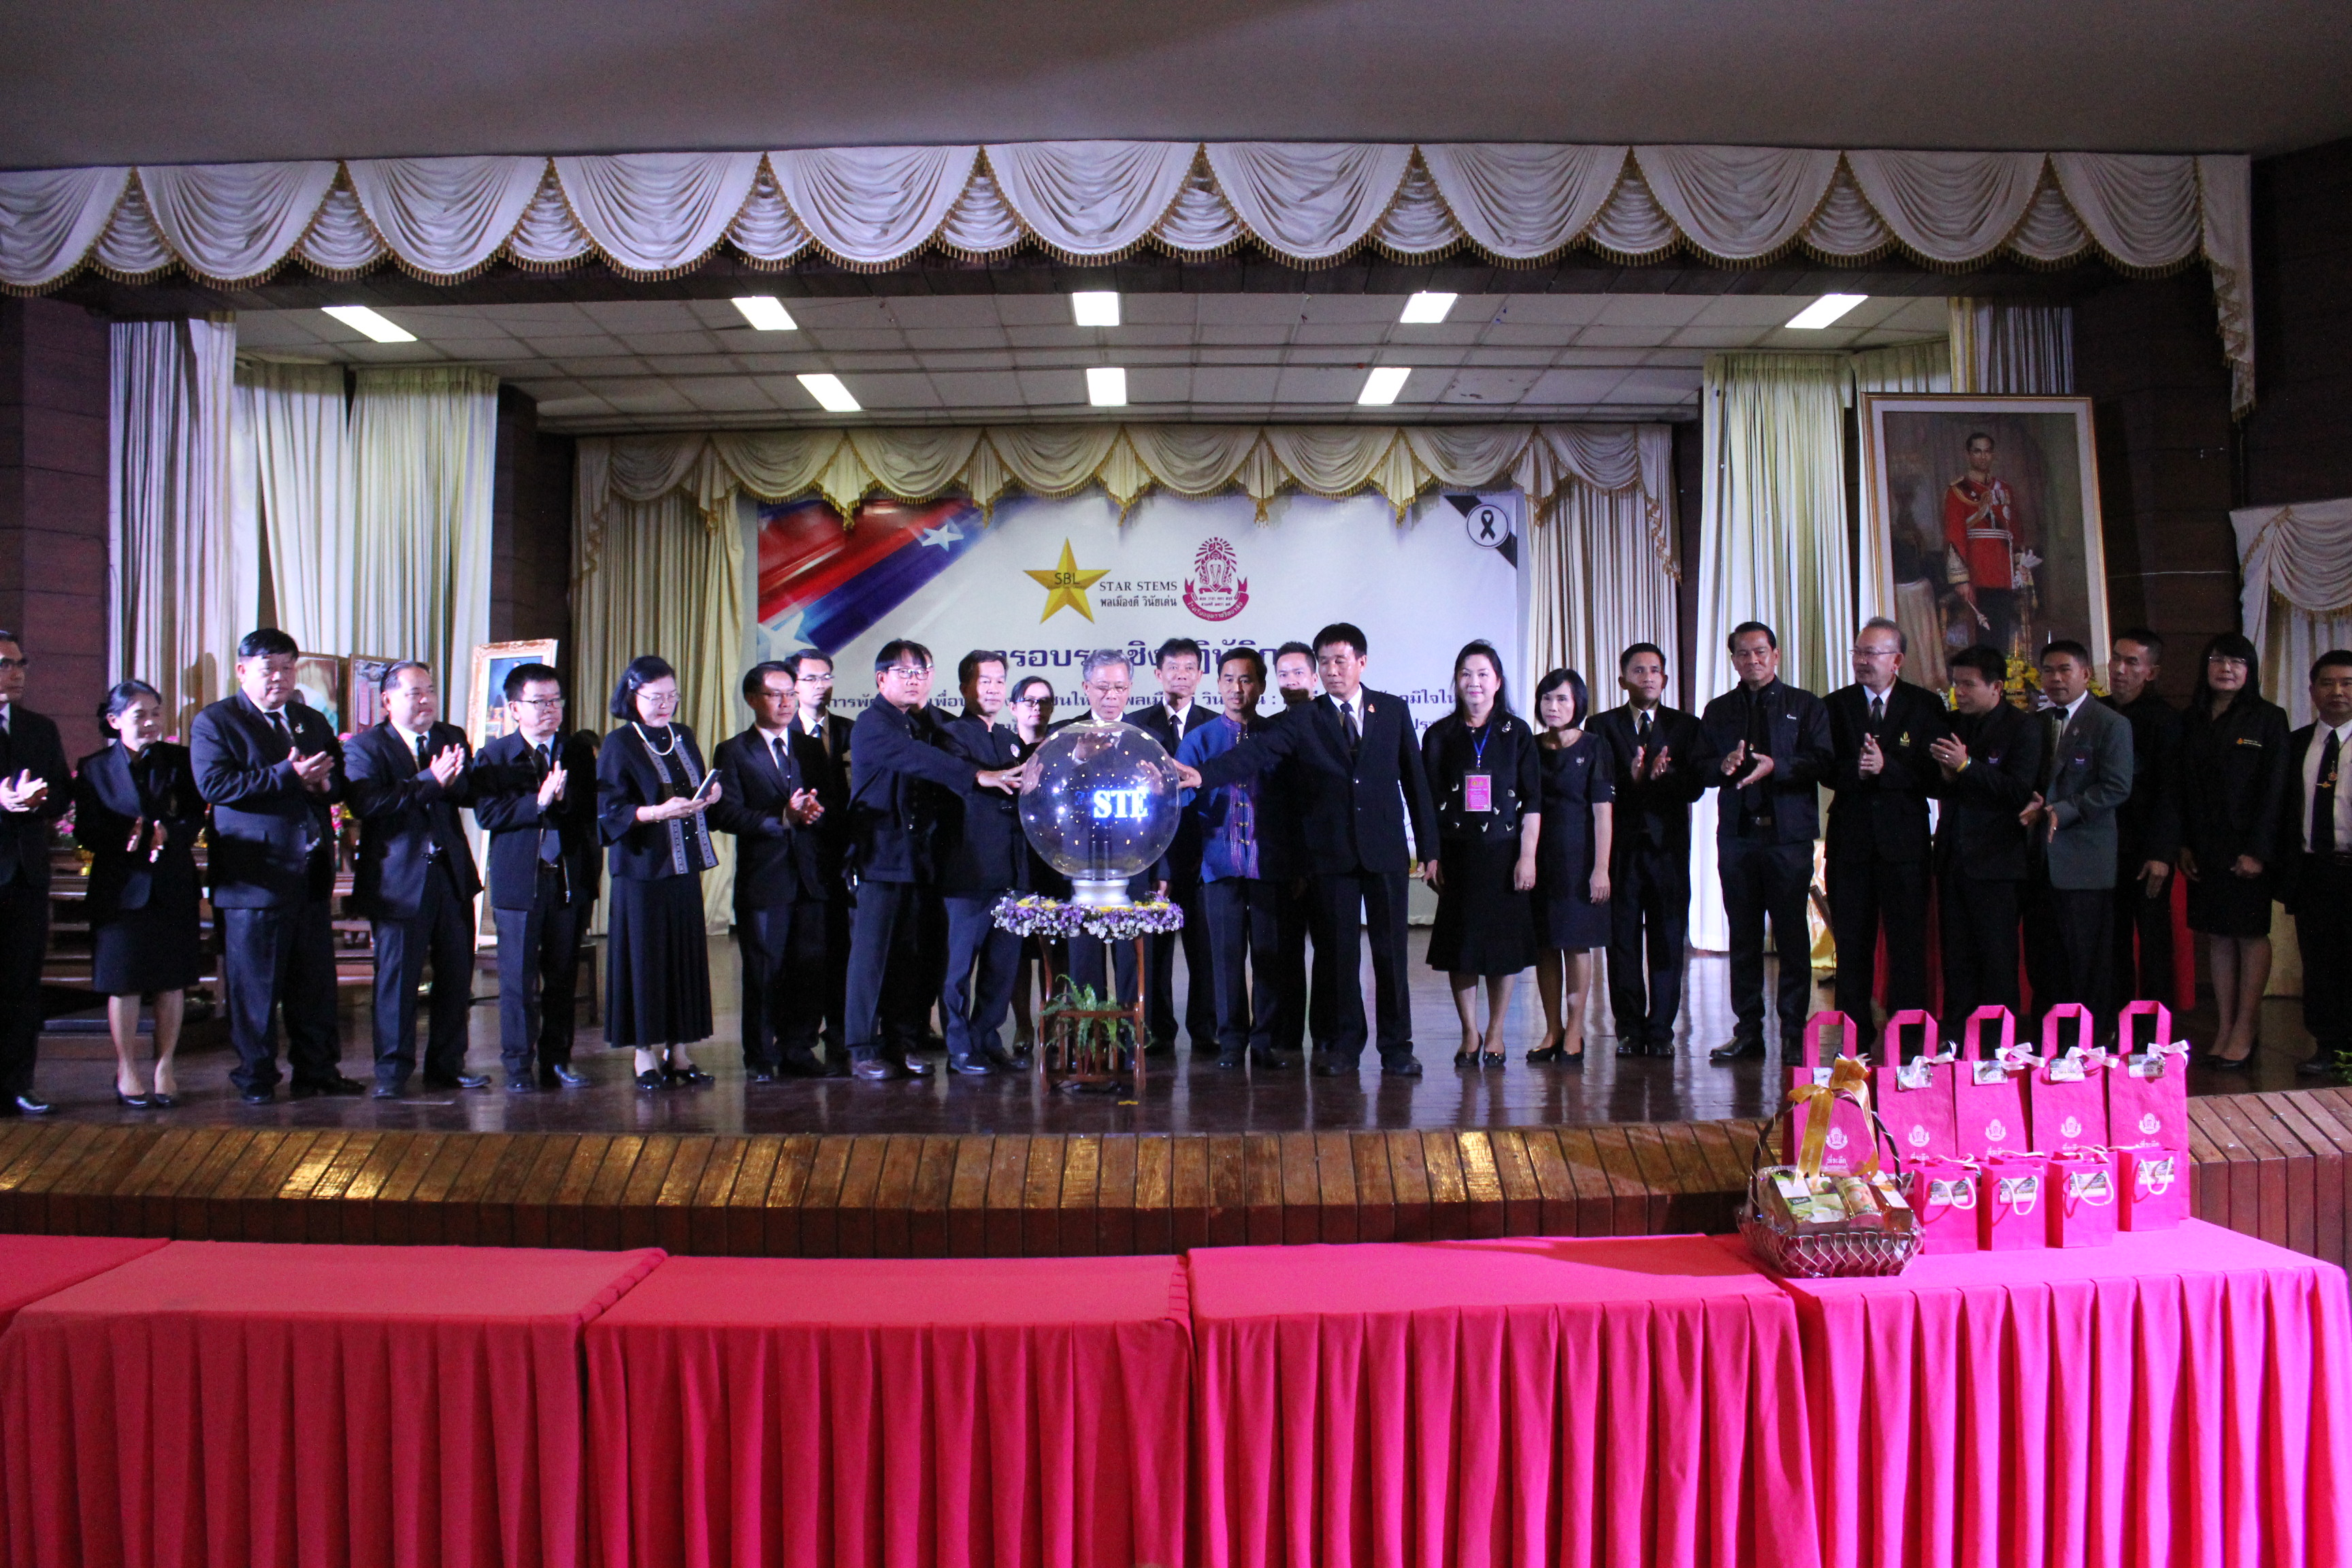 Thailand News 26-03-17 4 NNT Seminar held to develop teachers who can instill moral values in students 1